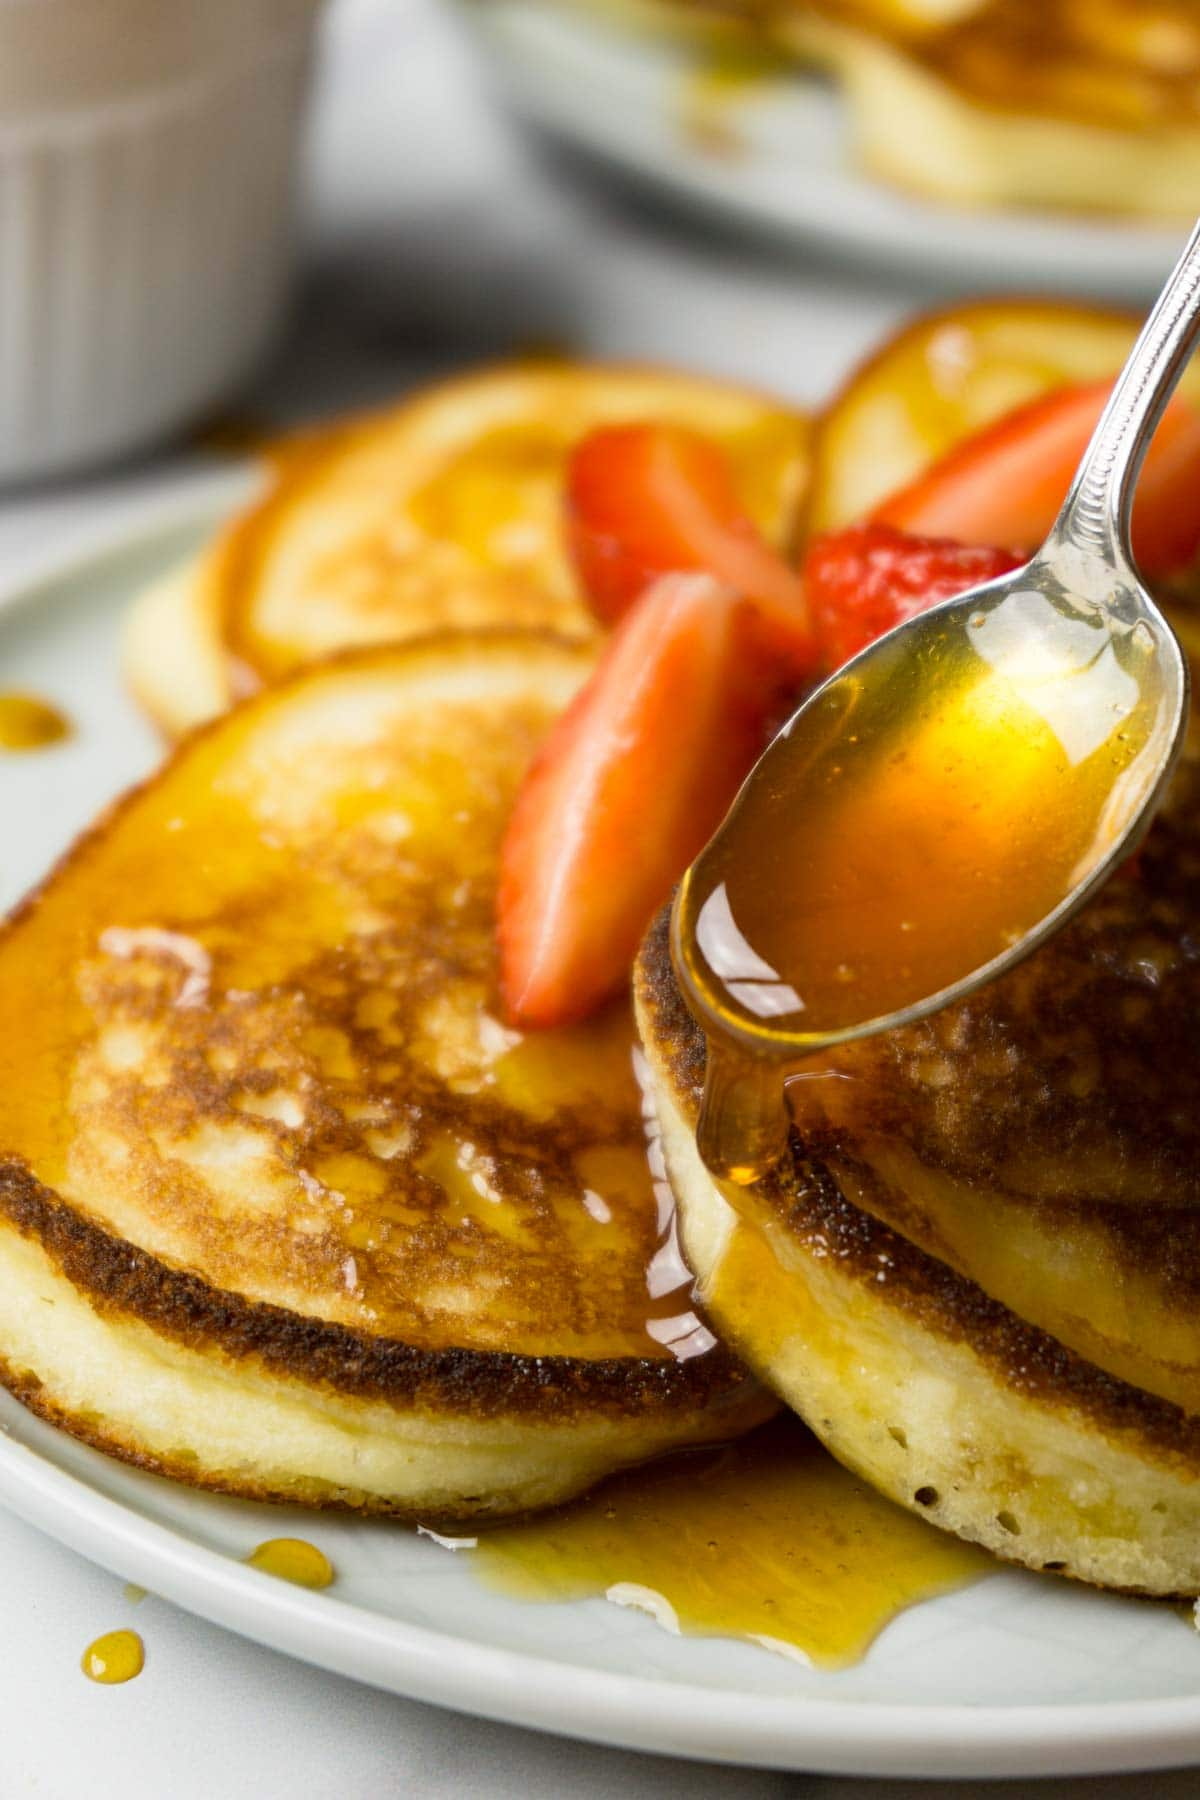 A silver spoon is pouring sweet syrup on the pancakes garnished with fresh strawberries.